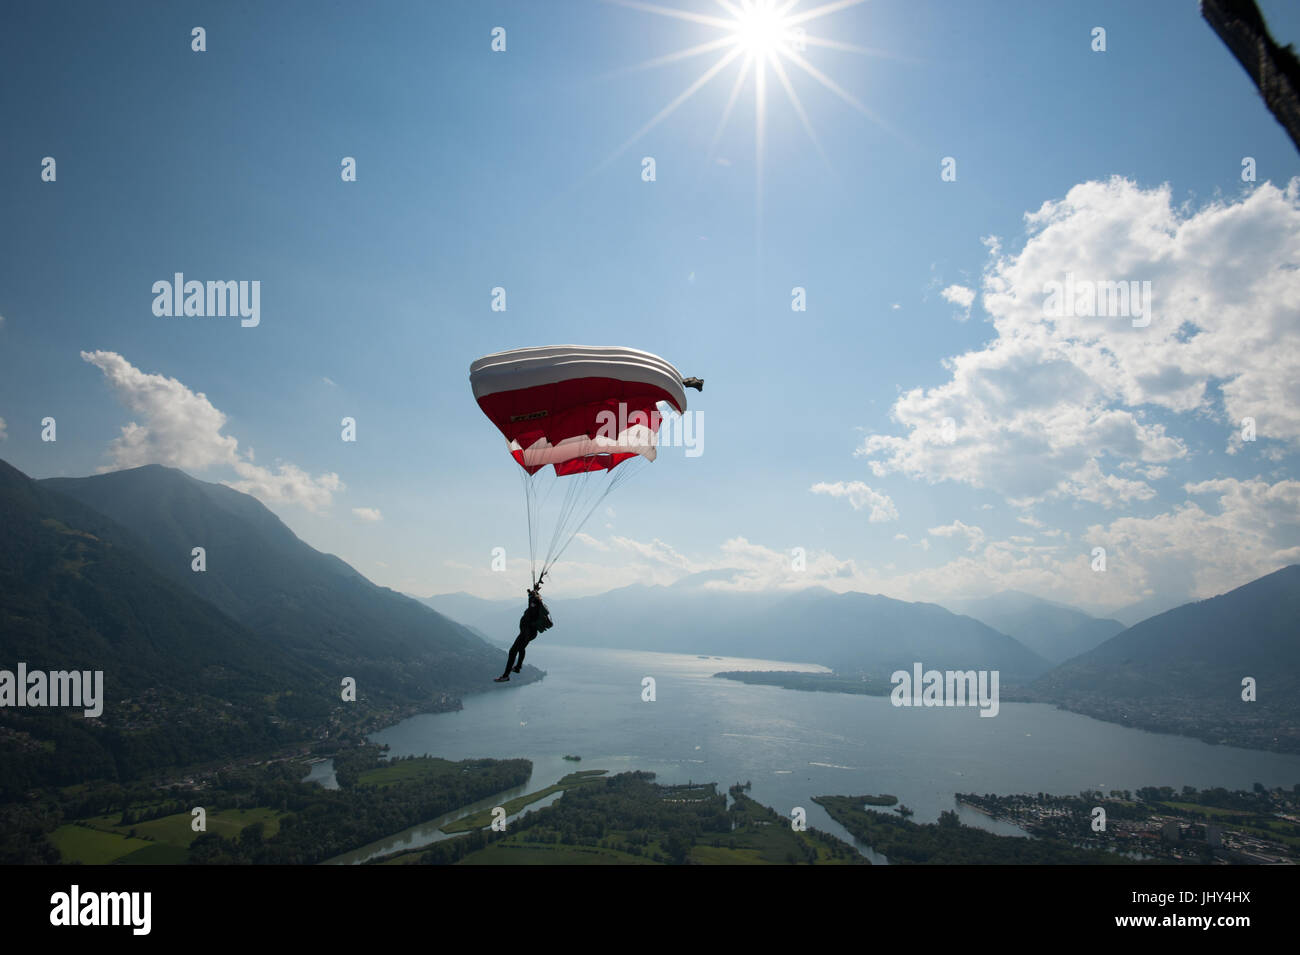 Skydiver flying his parachute above the Para Centro Locarno in Switzerland - Stock Image